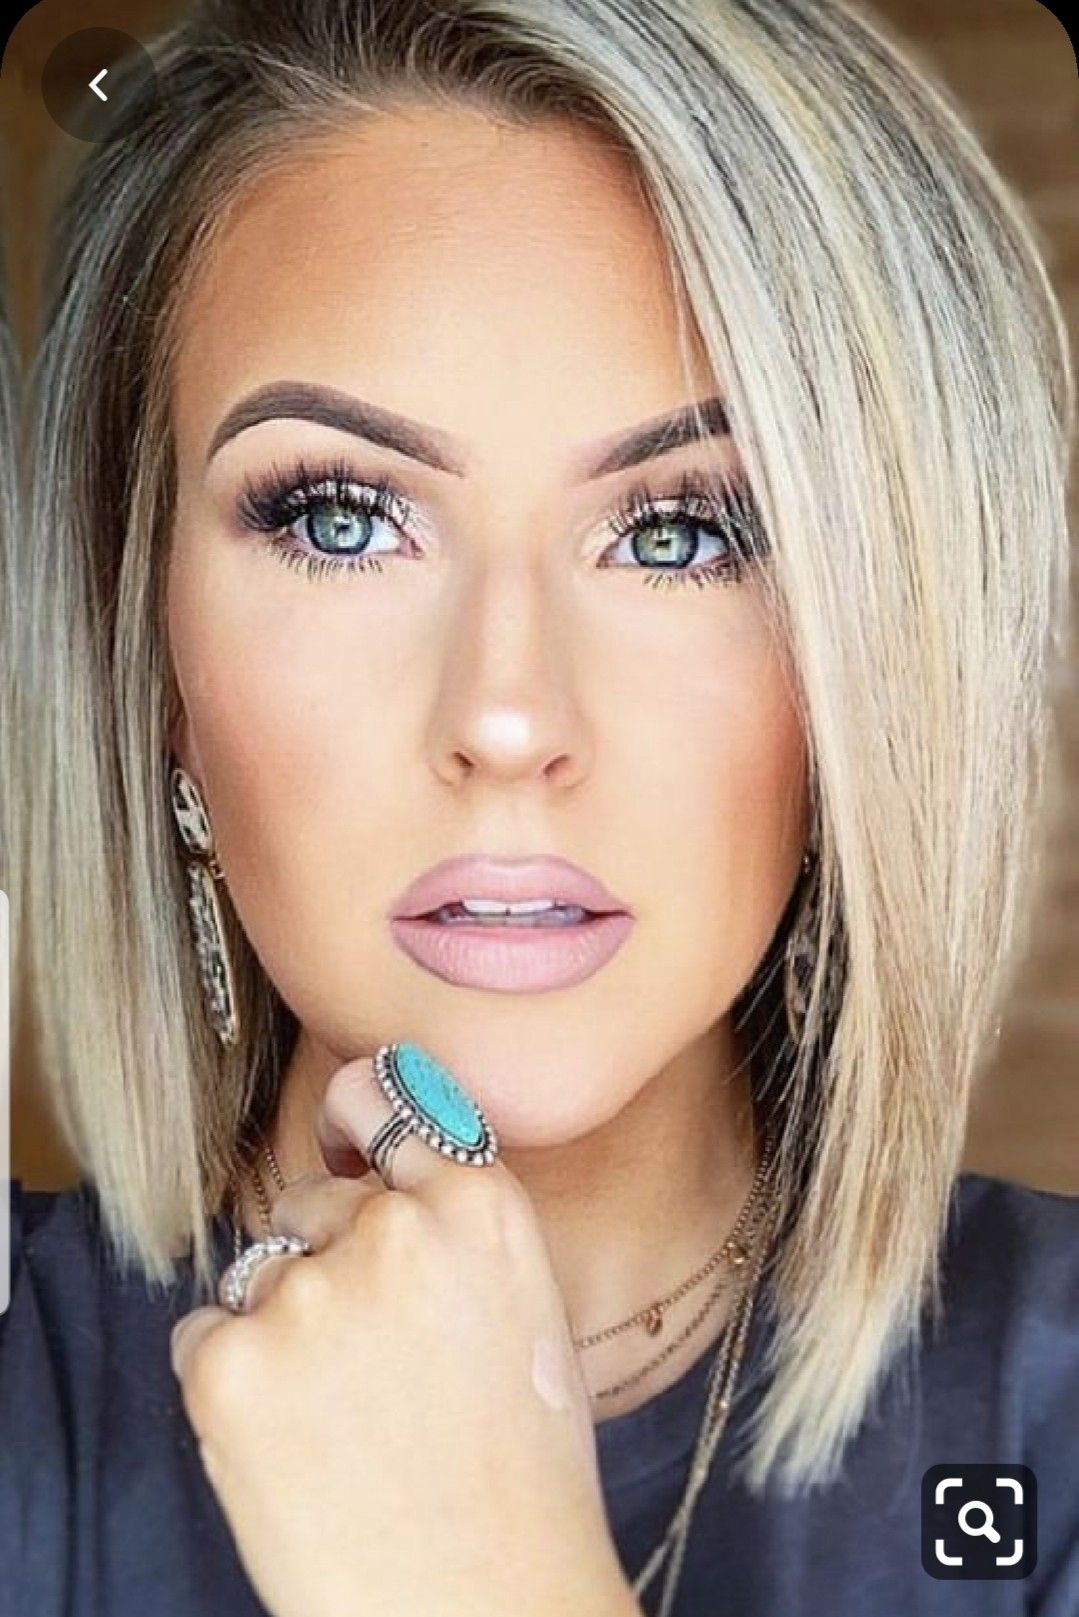 Pin By Mariaamelia On Fashion Beauty In 2020 Bob Hairstyles Short Hair Styles Hair Styles